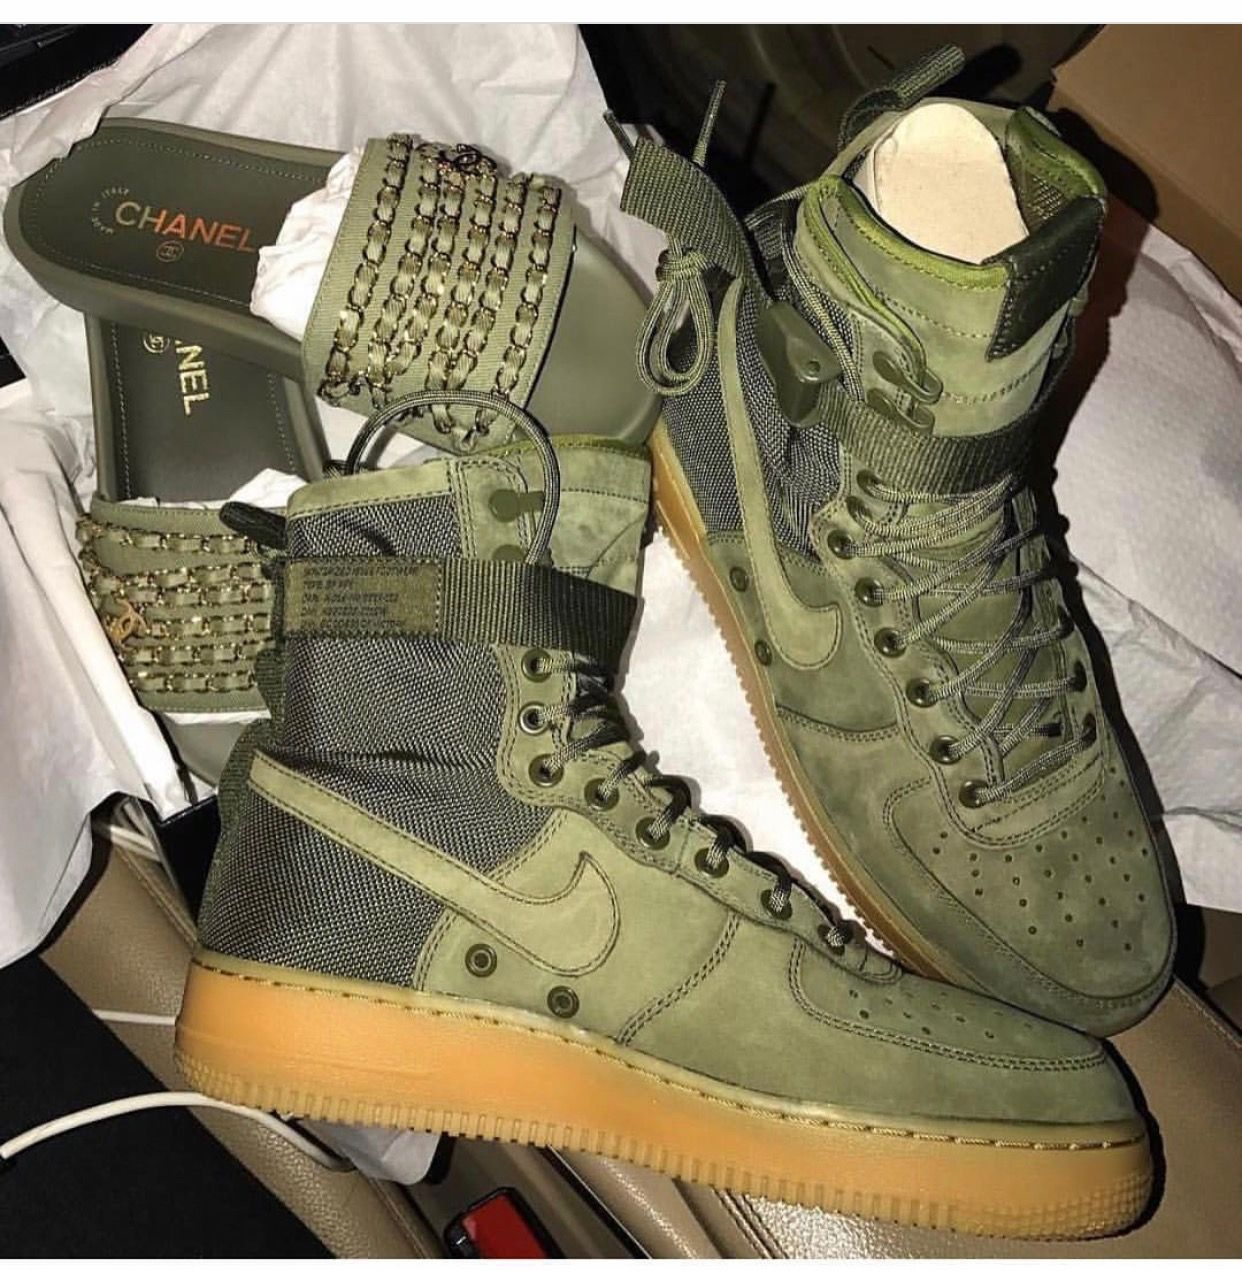 Details about Nike SF Air Force 1 'Desert Camo' High Tops: Size 10